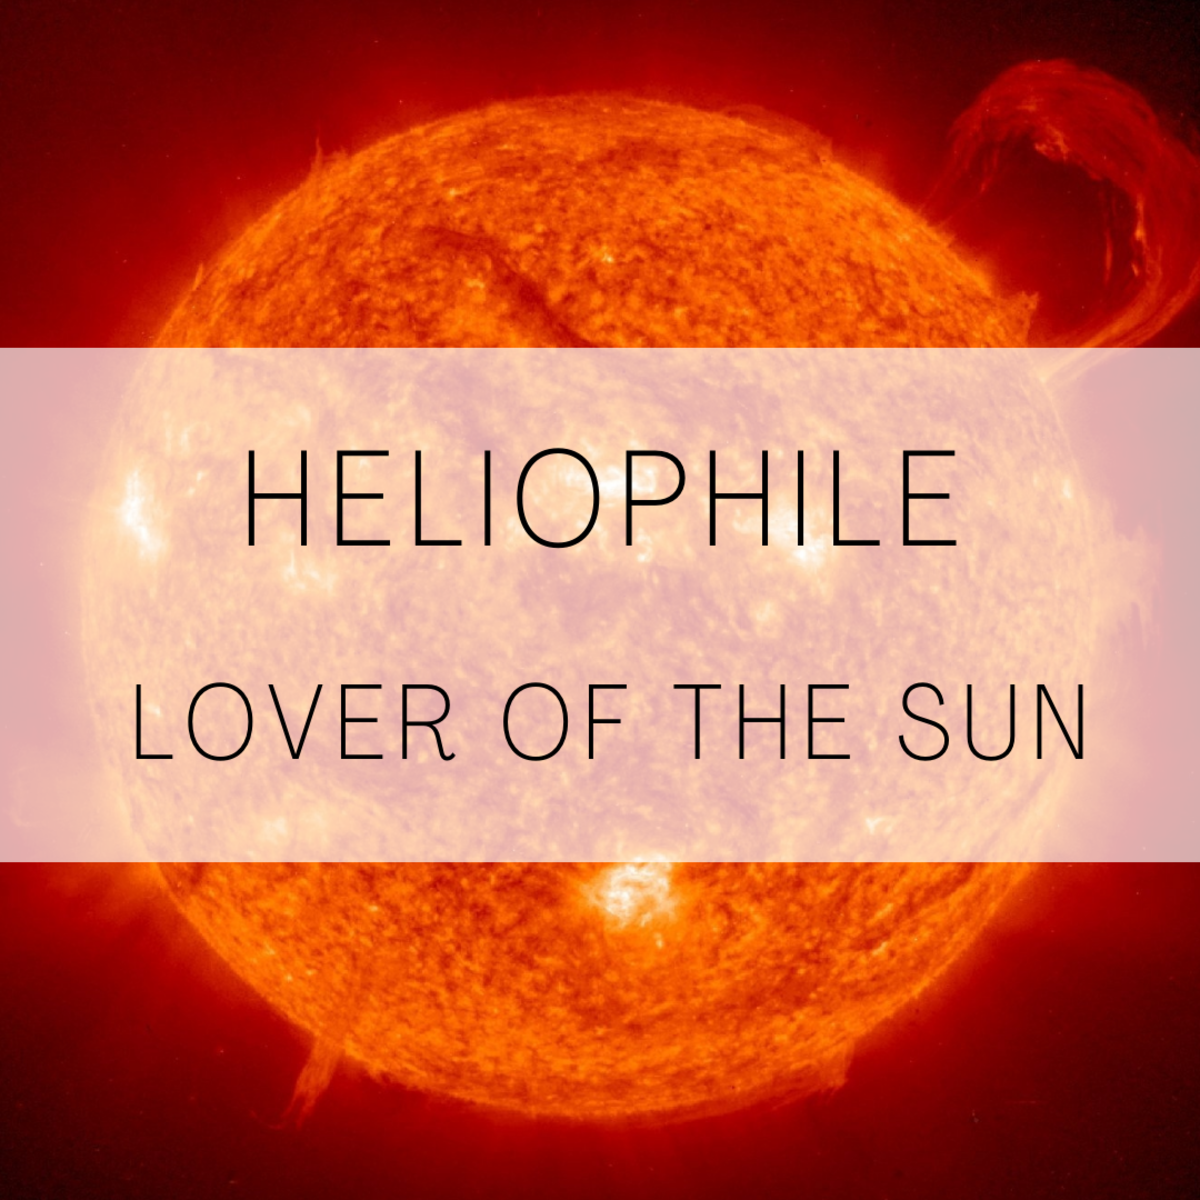 Heliophile, a lover of the sun